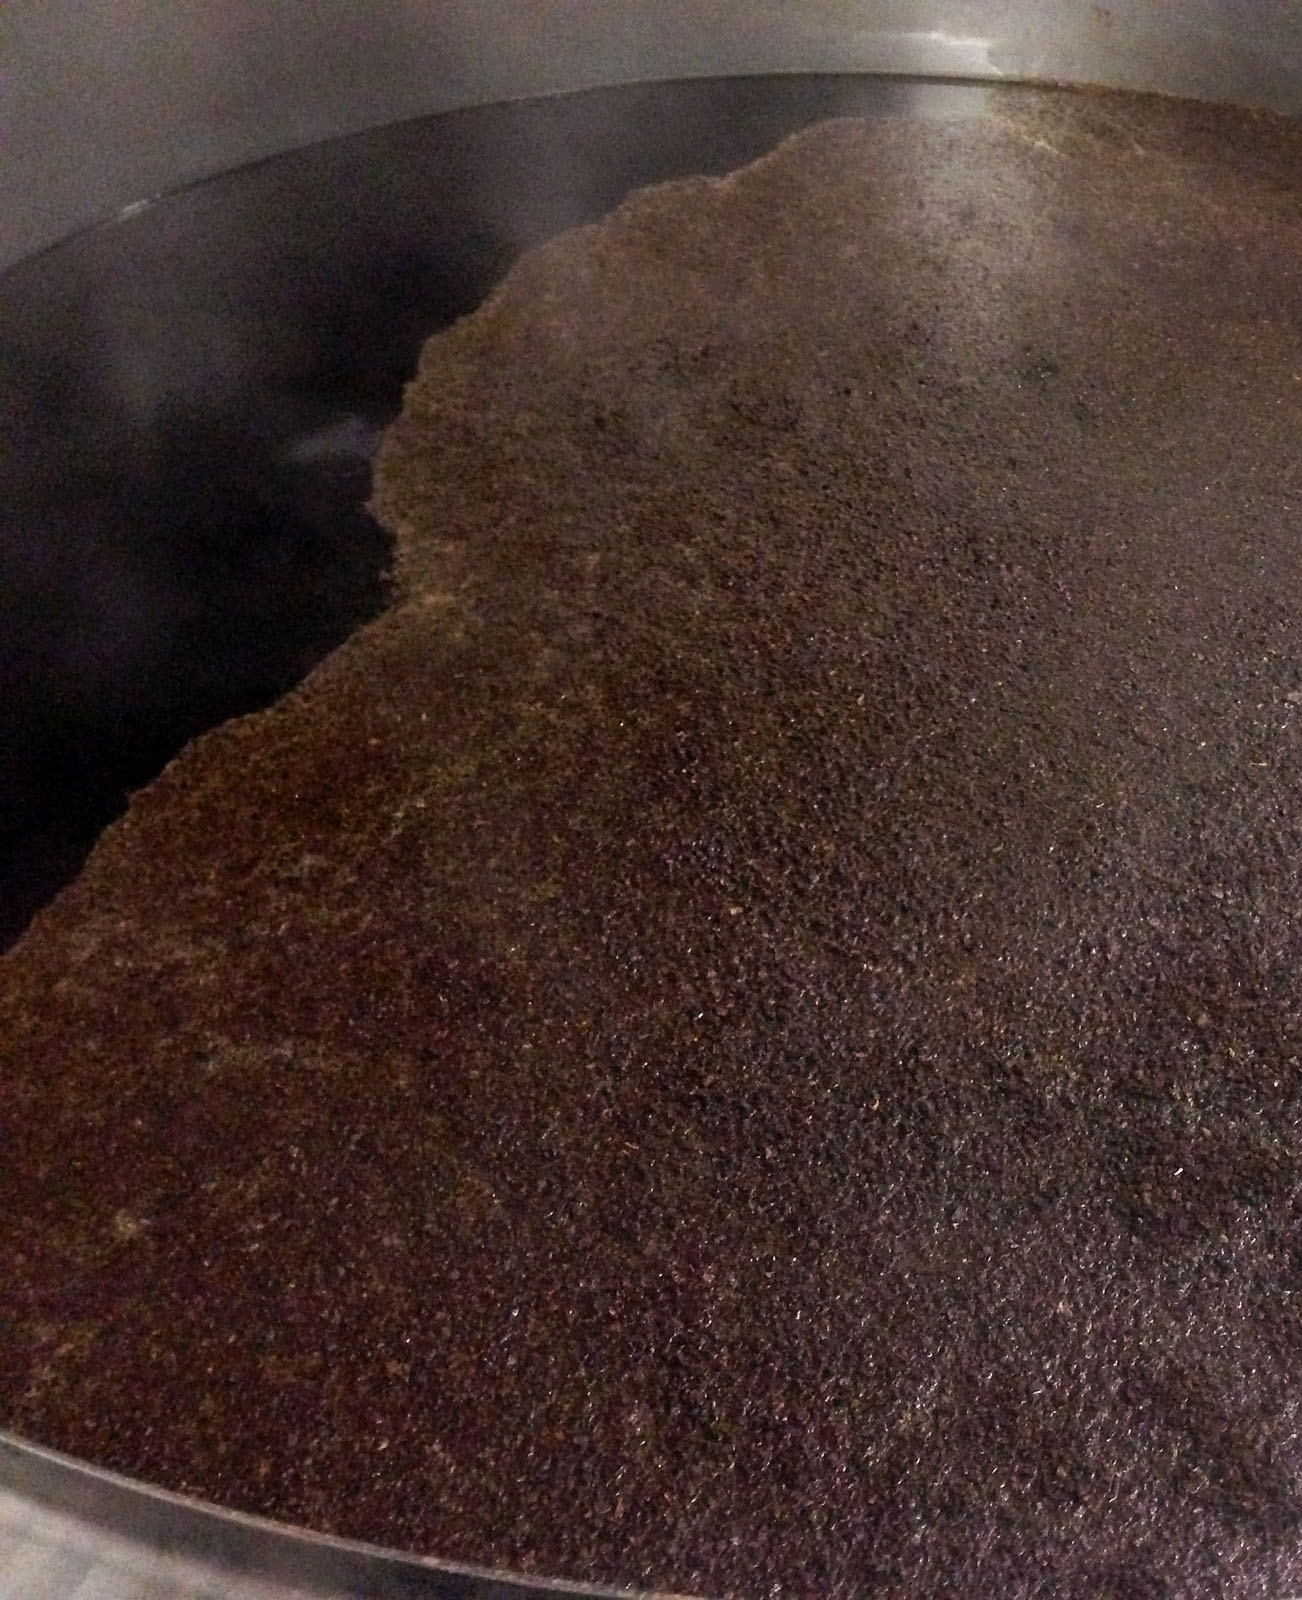 Ground coffee beans in the kettle